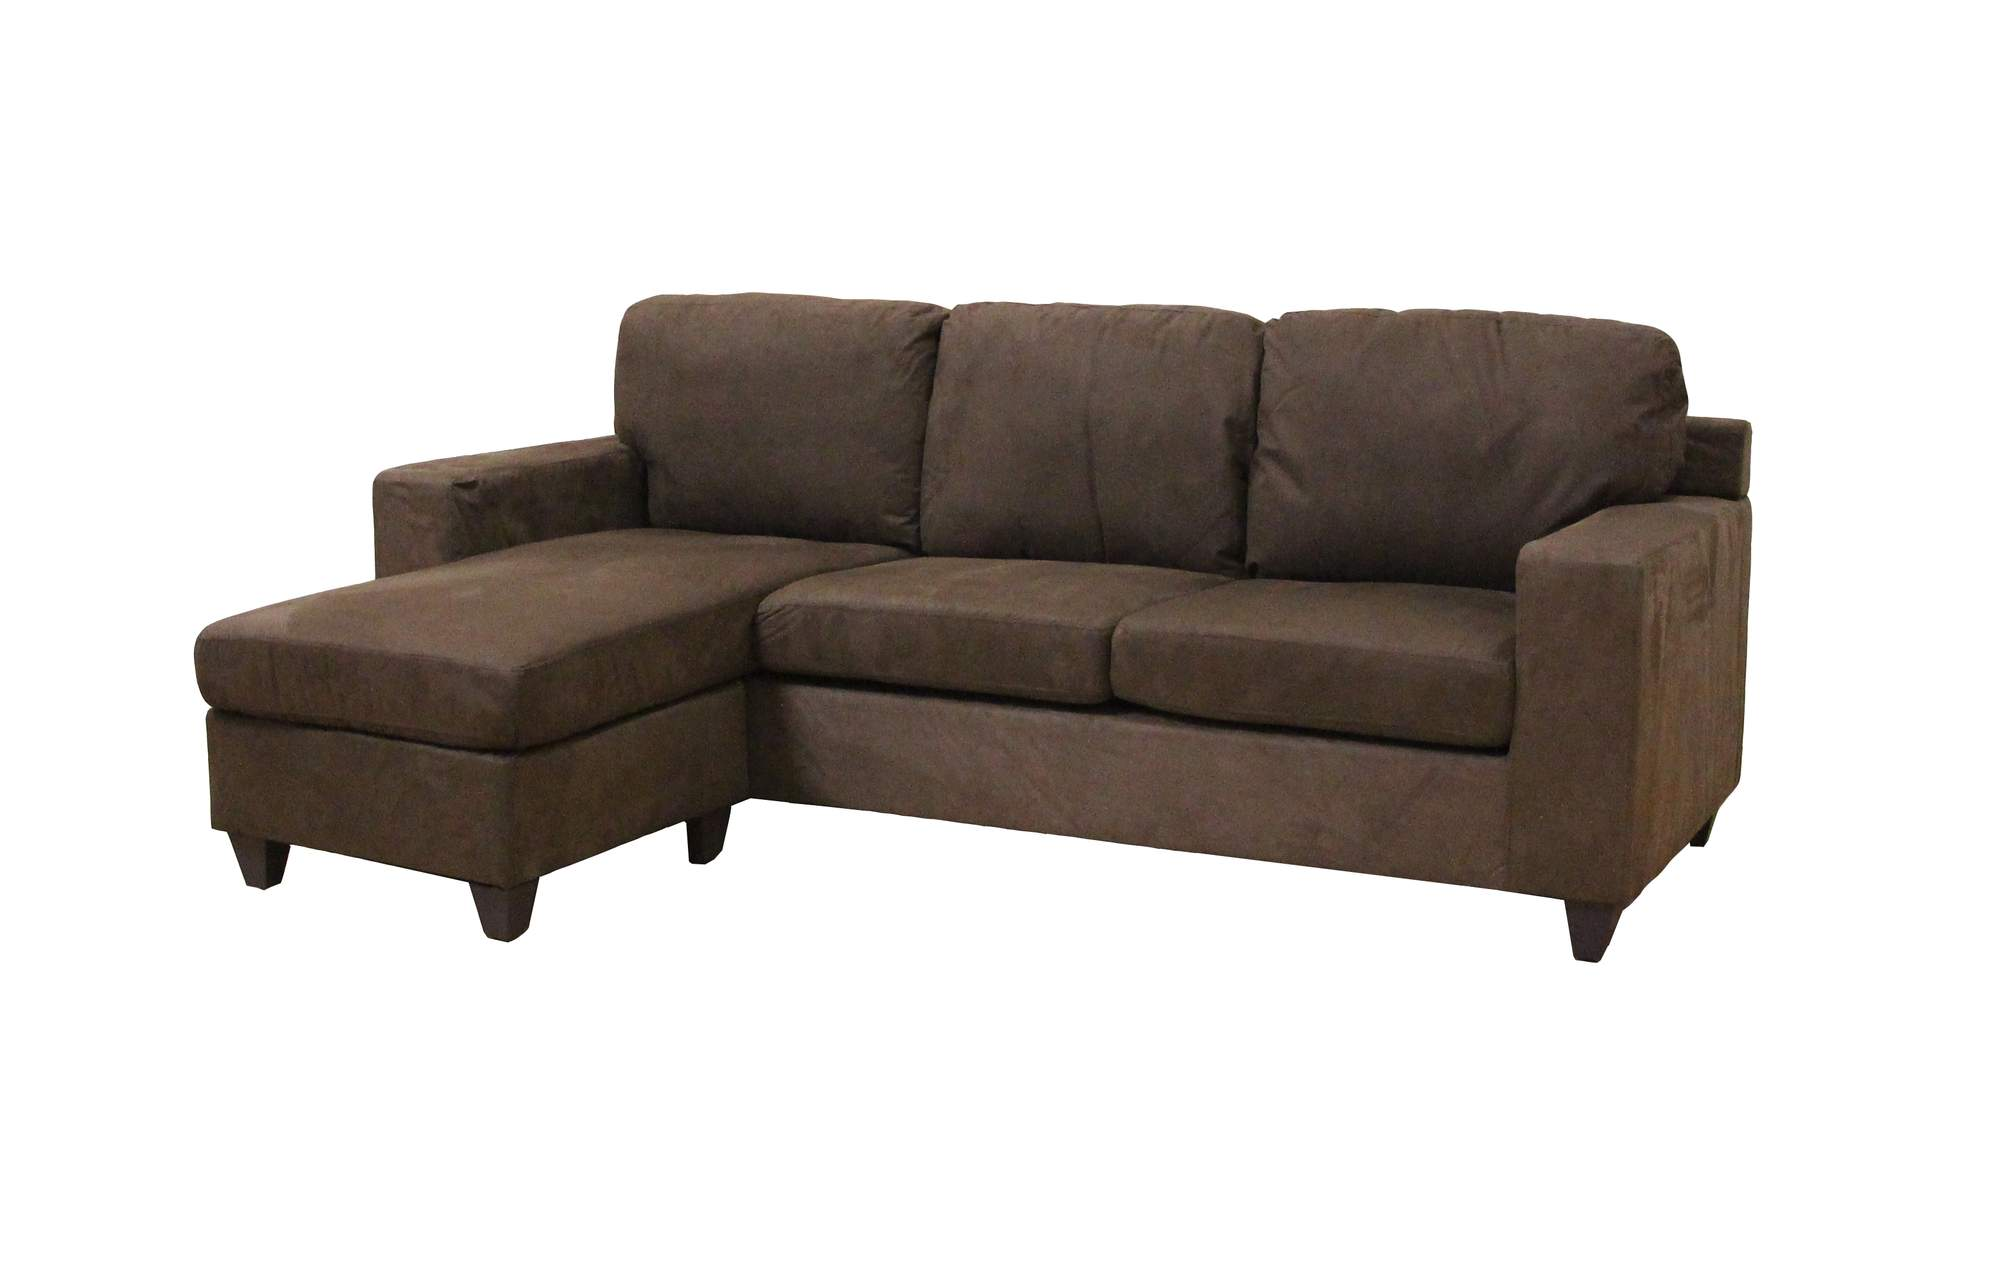 Beau Acme Vogue Microfiber Reversible Chaise Sectional Sofa, Multiple Colors